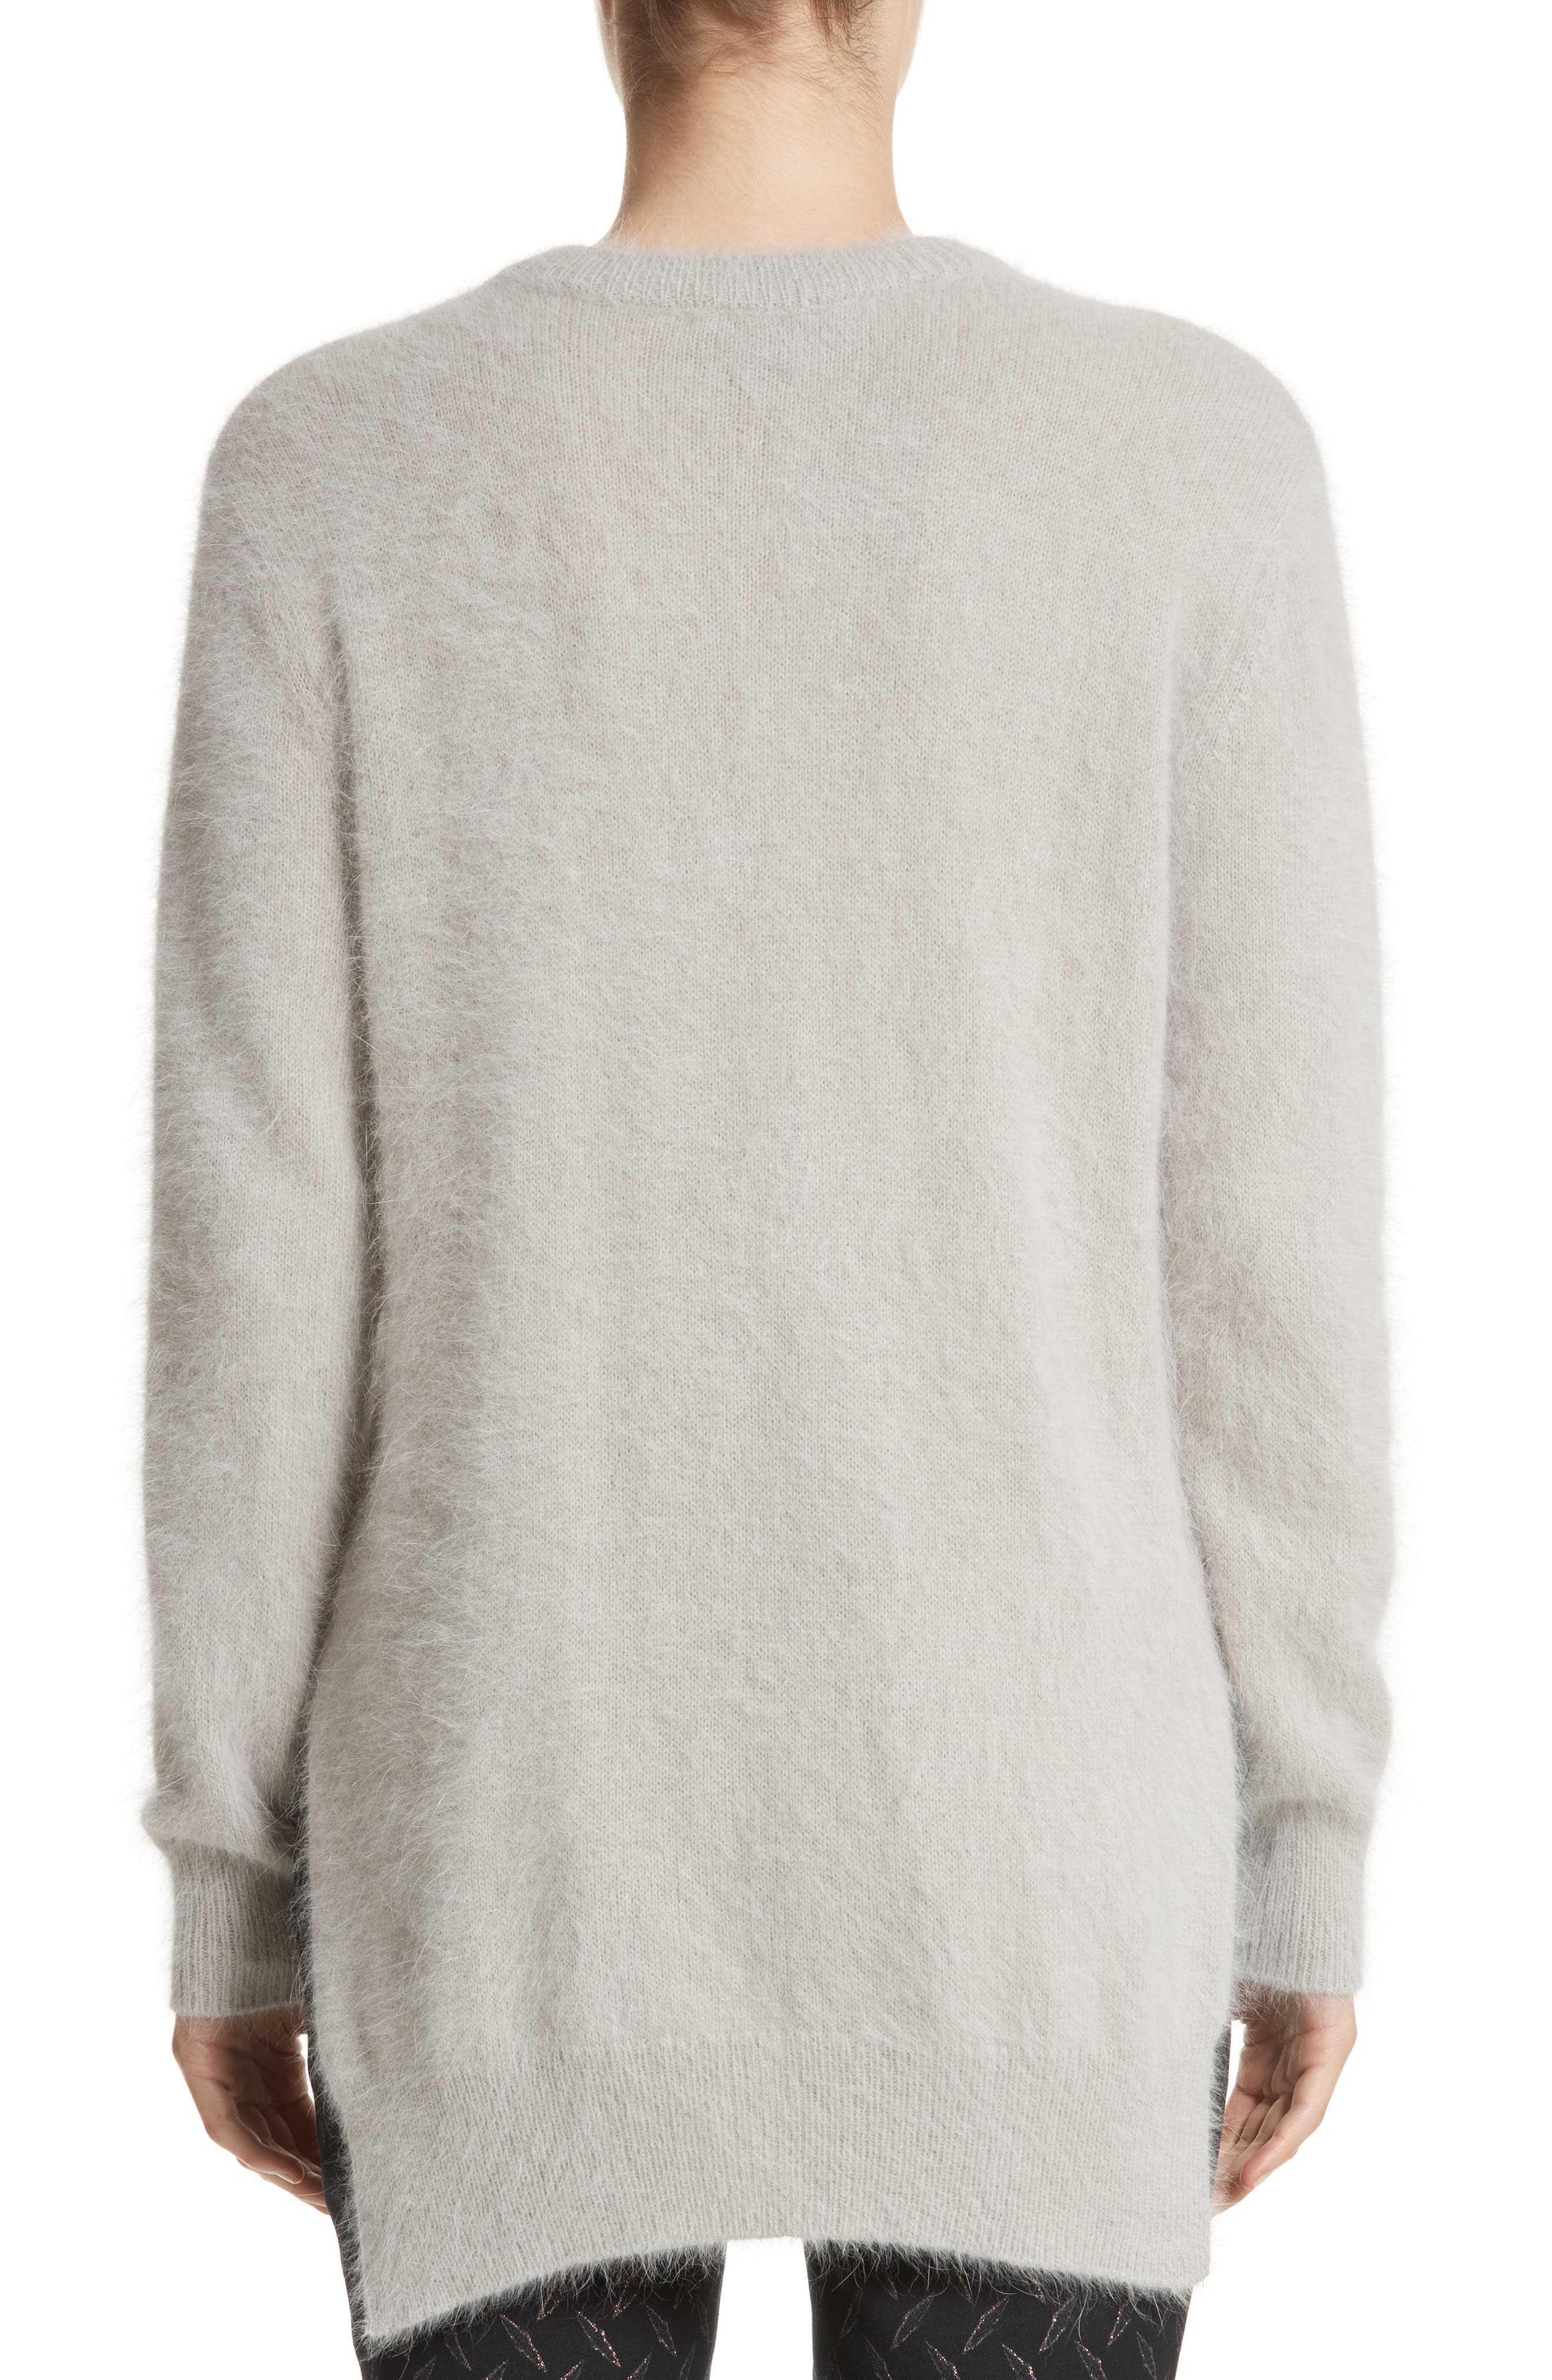 Angora Blend Sweater,                             Alternate thumbnail 2, color,                             Grey